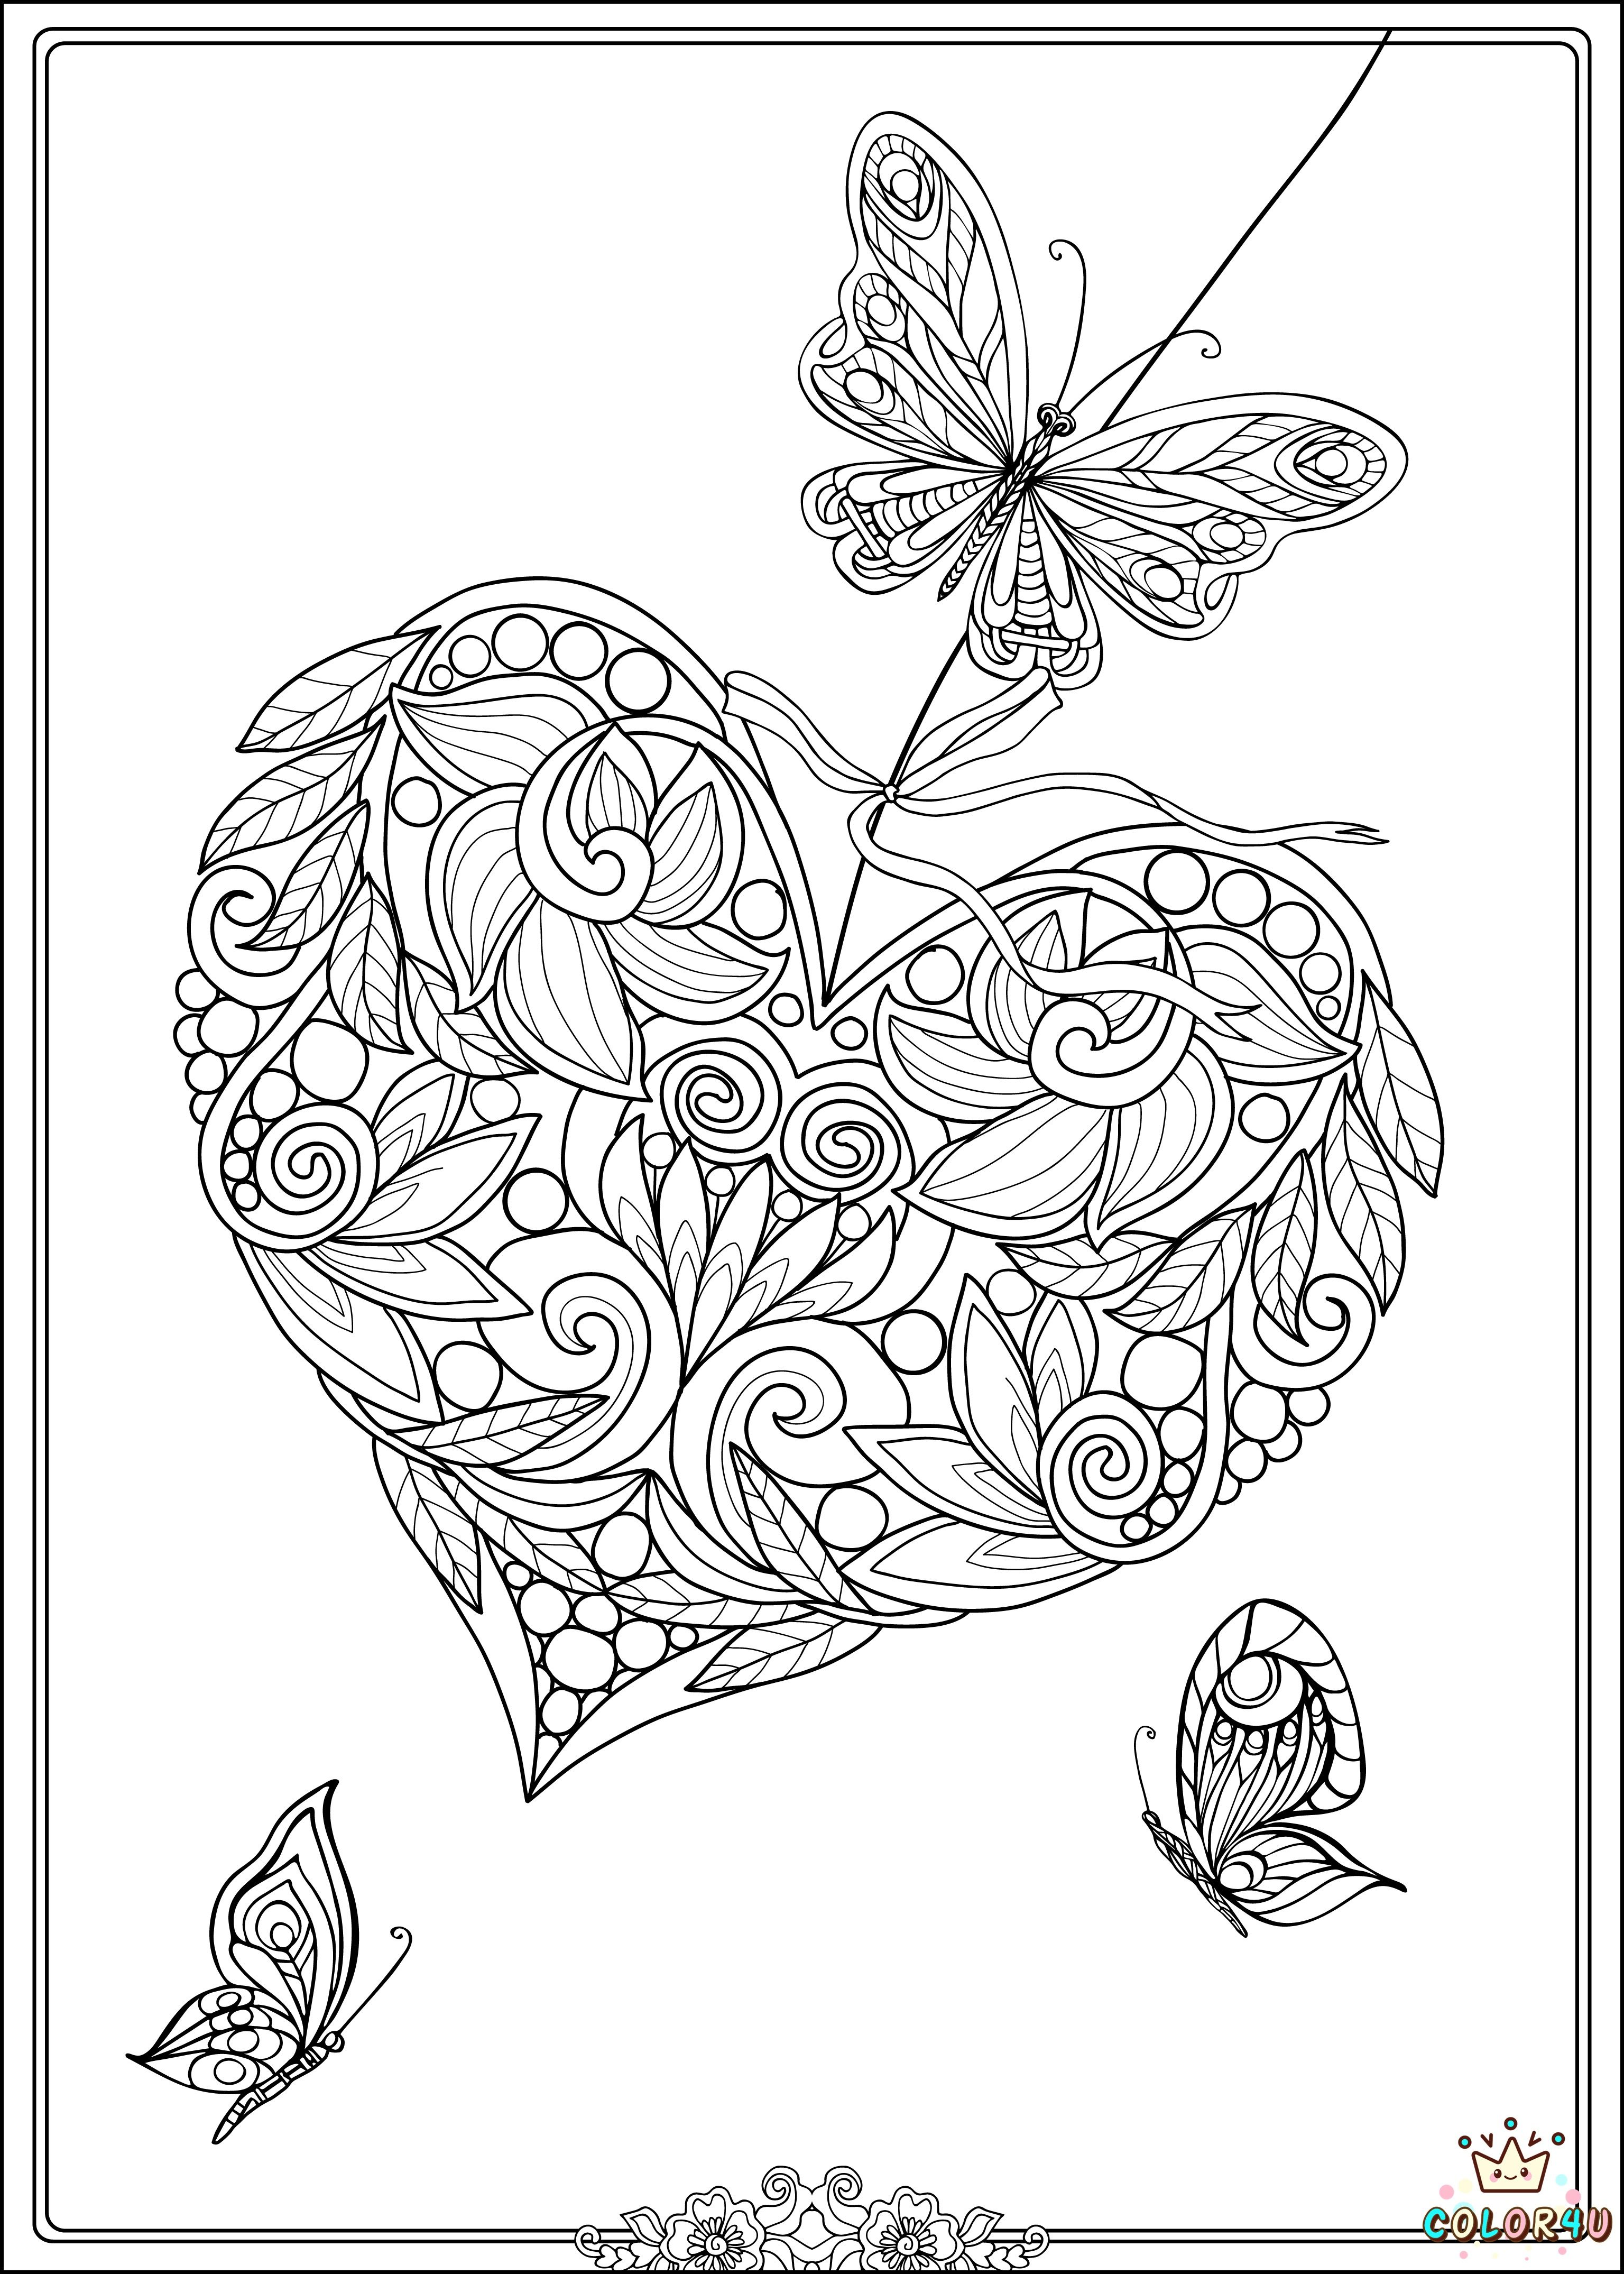 Pin By Petra Oltmans On Coloring Heart Coloring Pages Butterfly Coloring Page Mandala Coloring Pages